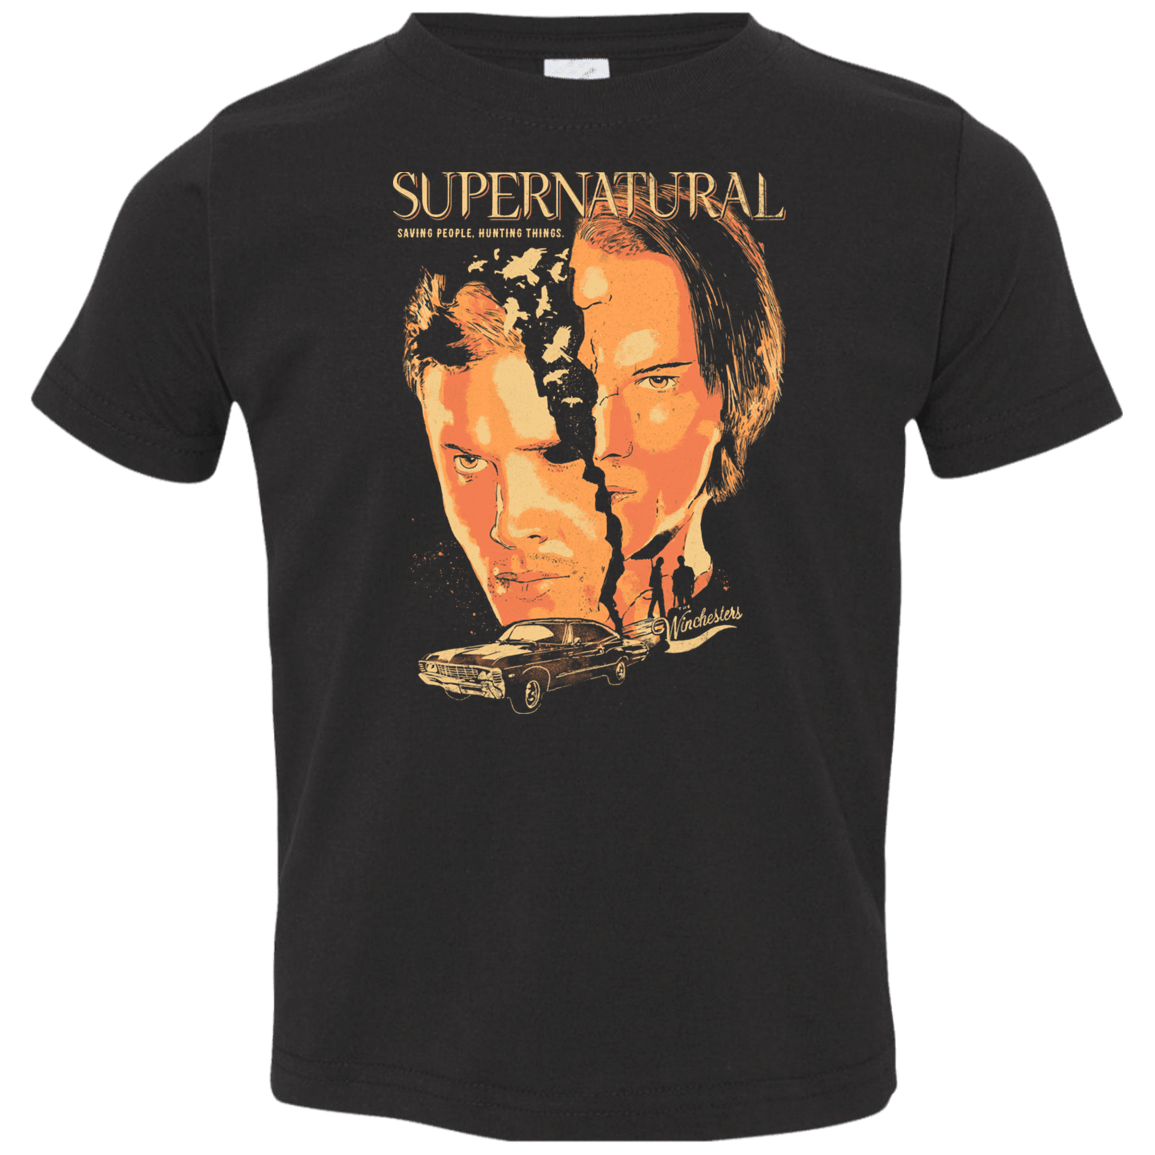 Supernatural Toddler Premium T-Shirt